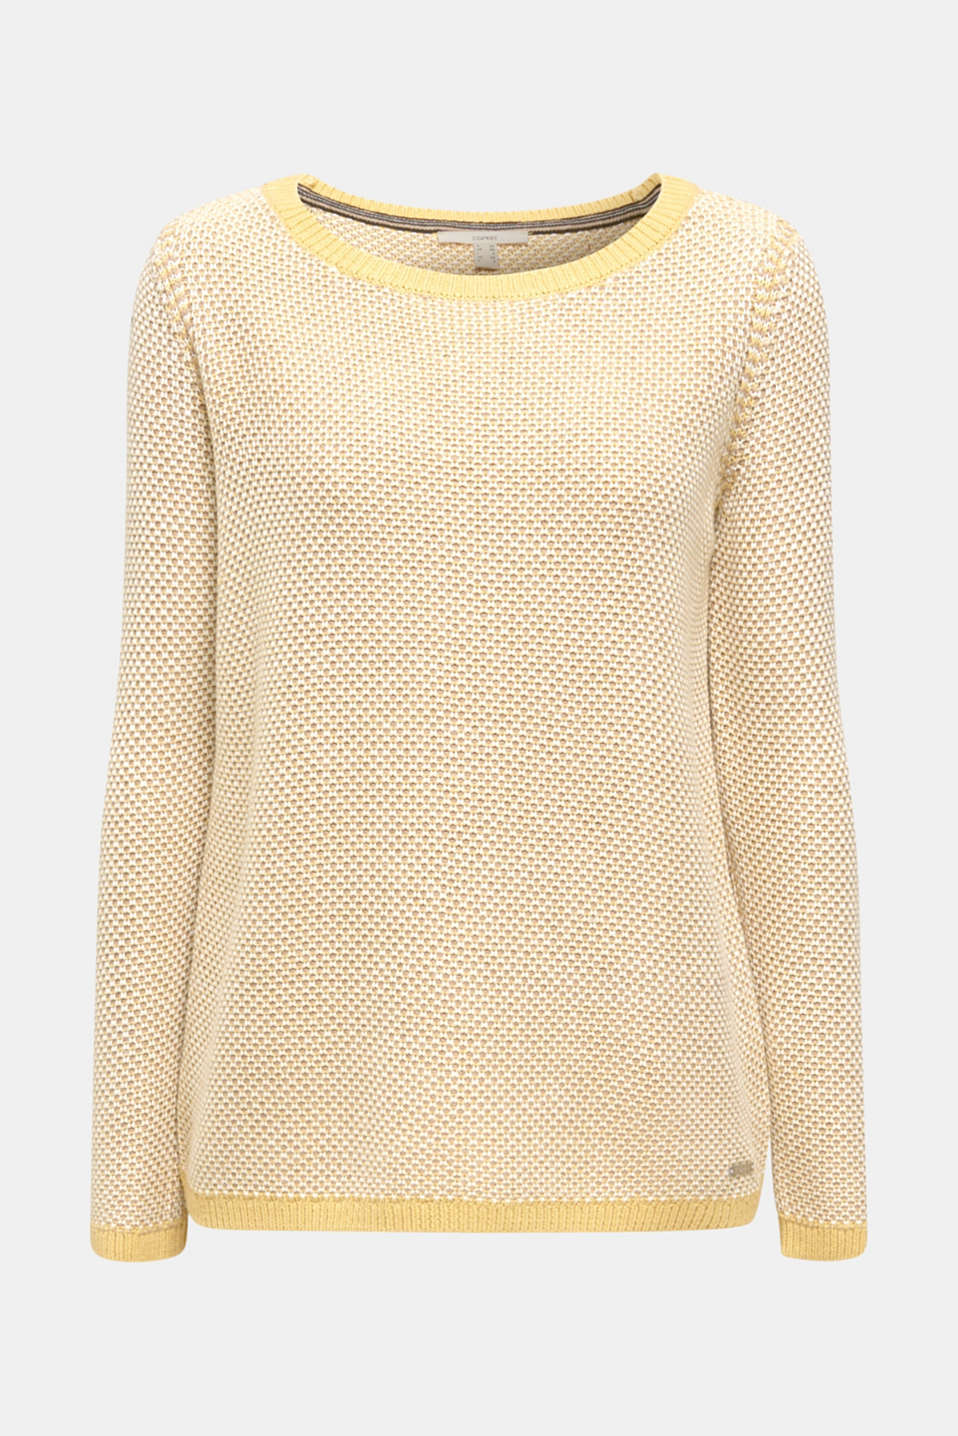 Sweaters, YELLOW 2, detail image number 5